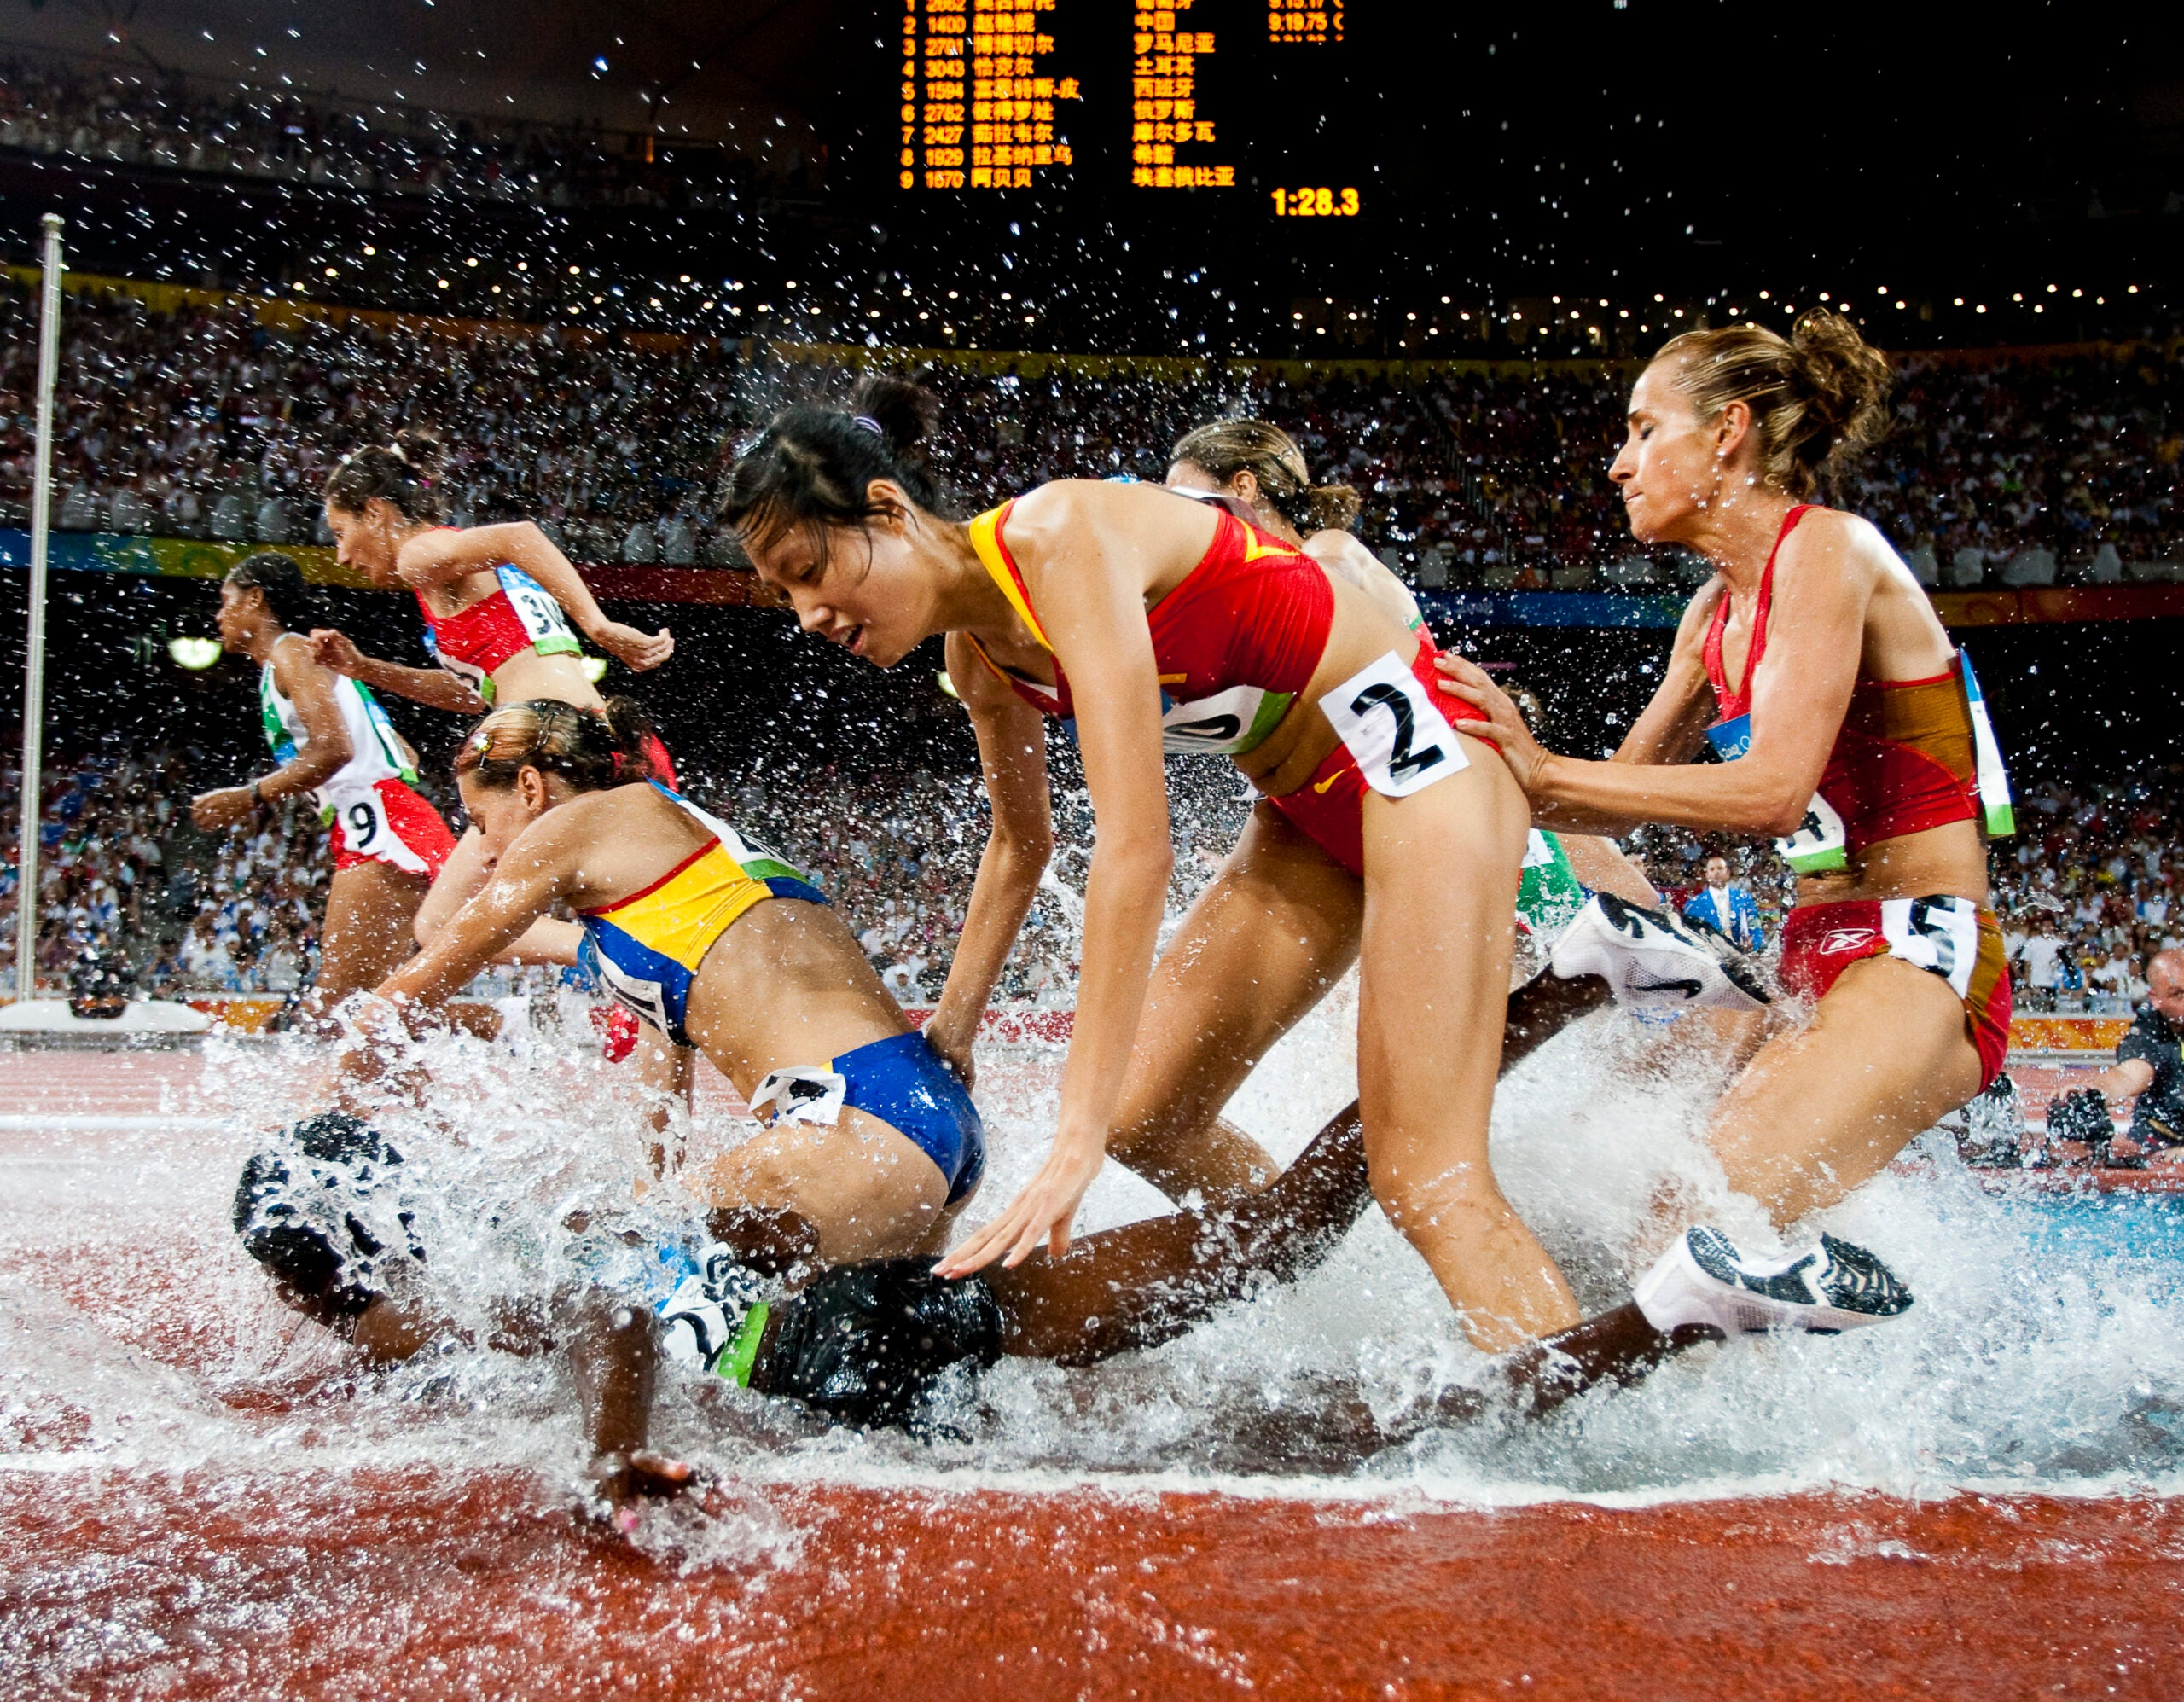 Runners splashing in the steeple chase pit.